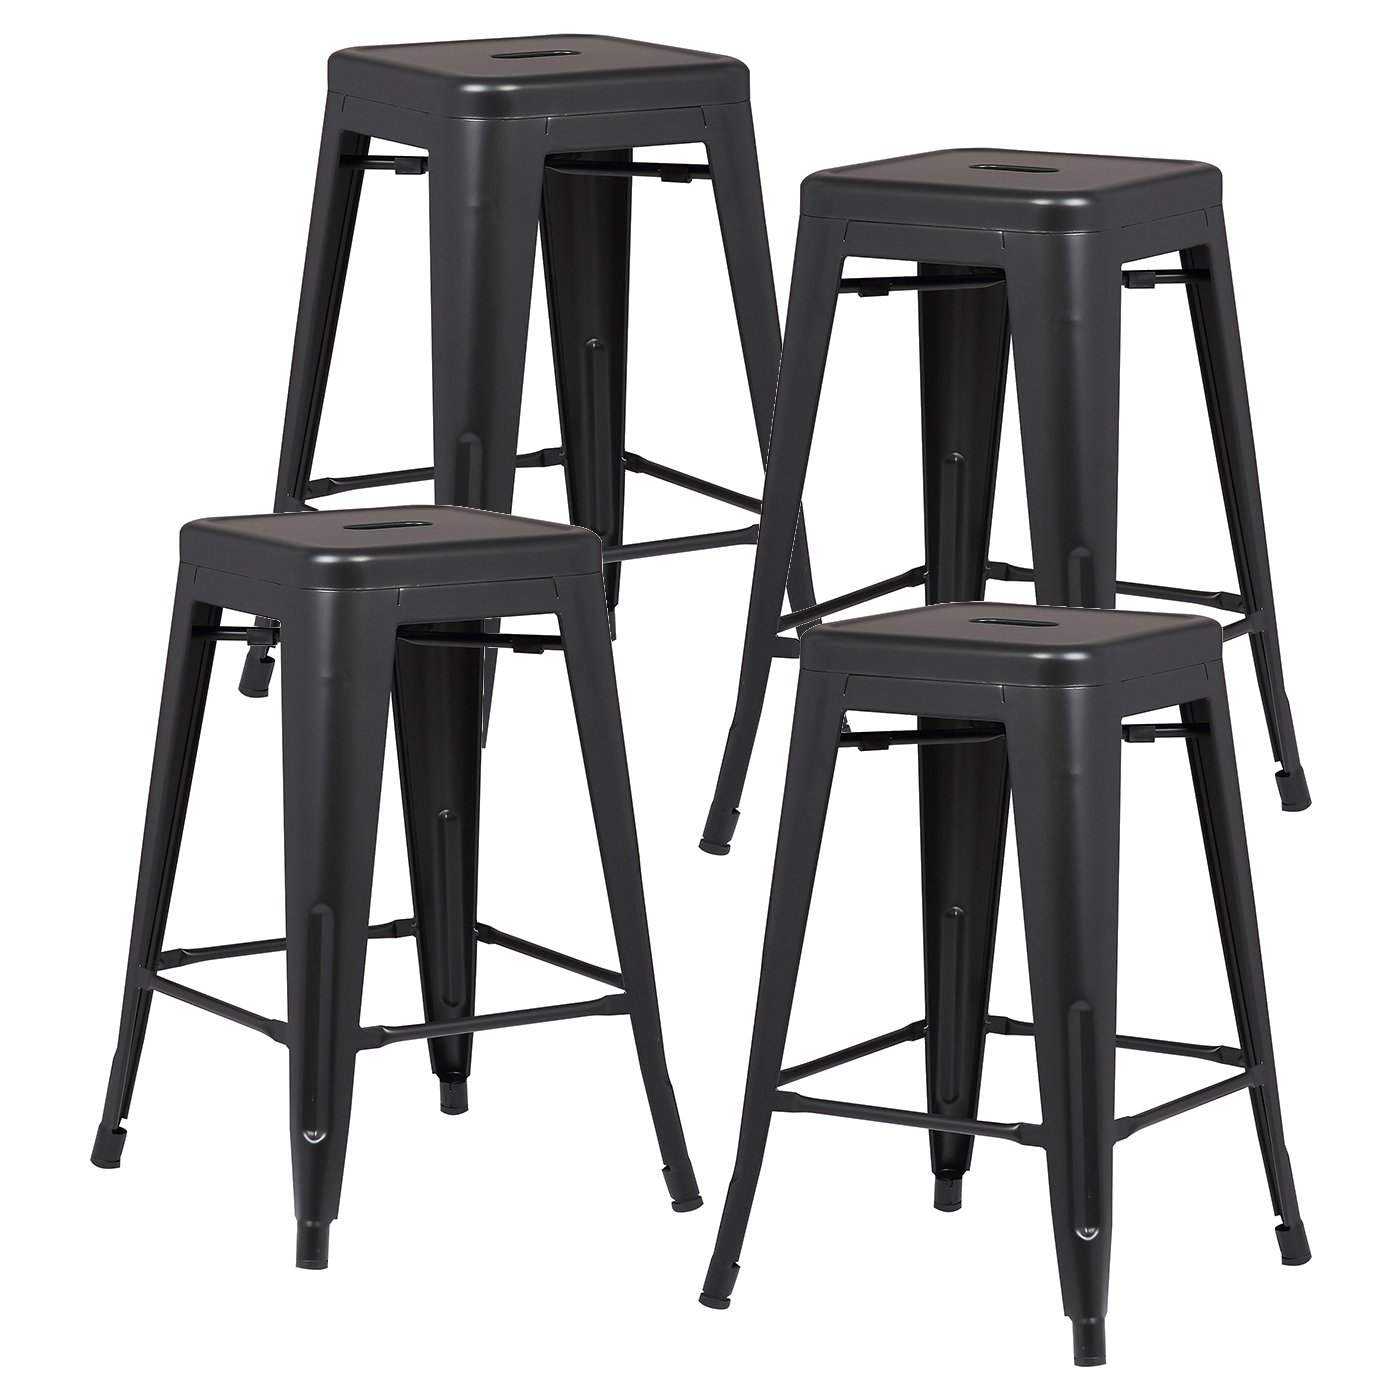 Poly and Bark Trattoria 24 Counter Height Industrial Bar Stool, Stackable, Black Set of 4